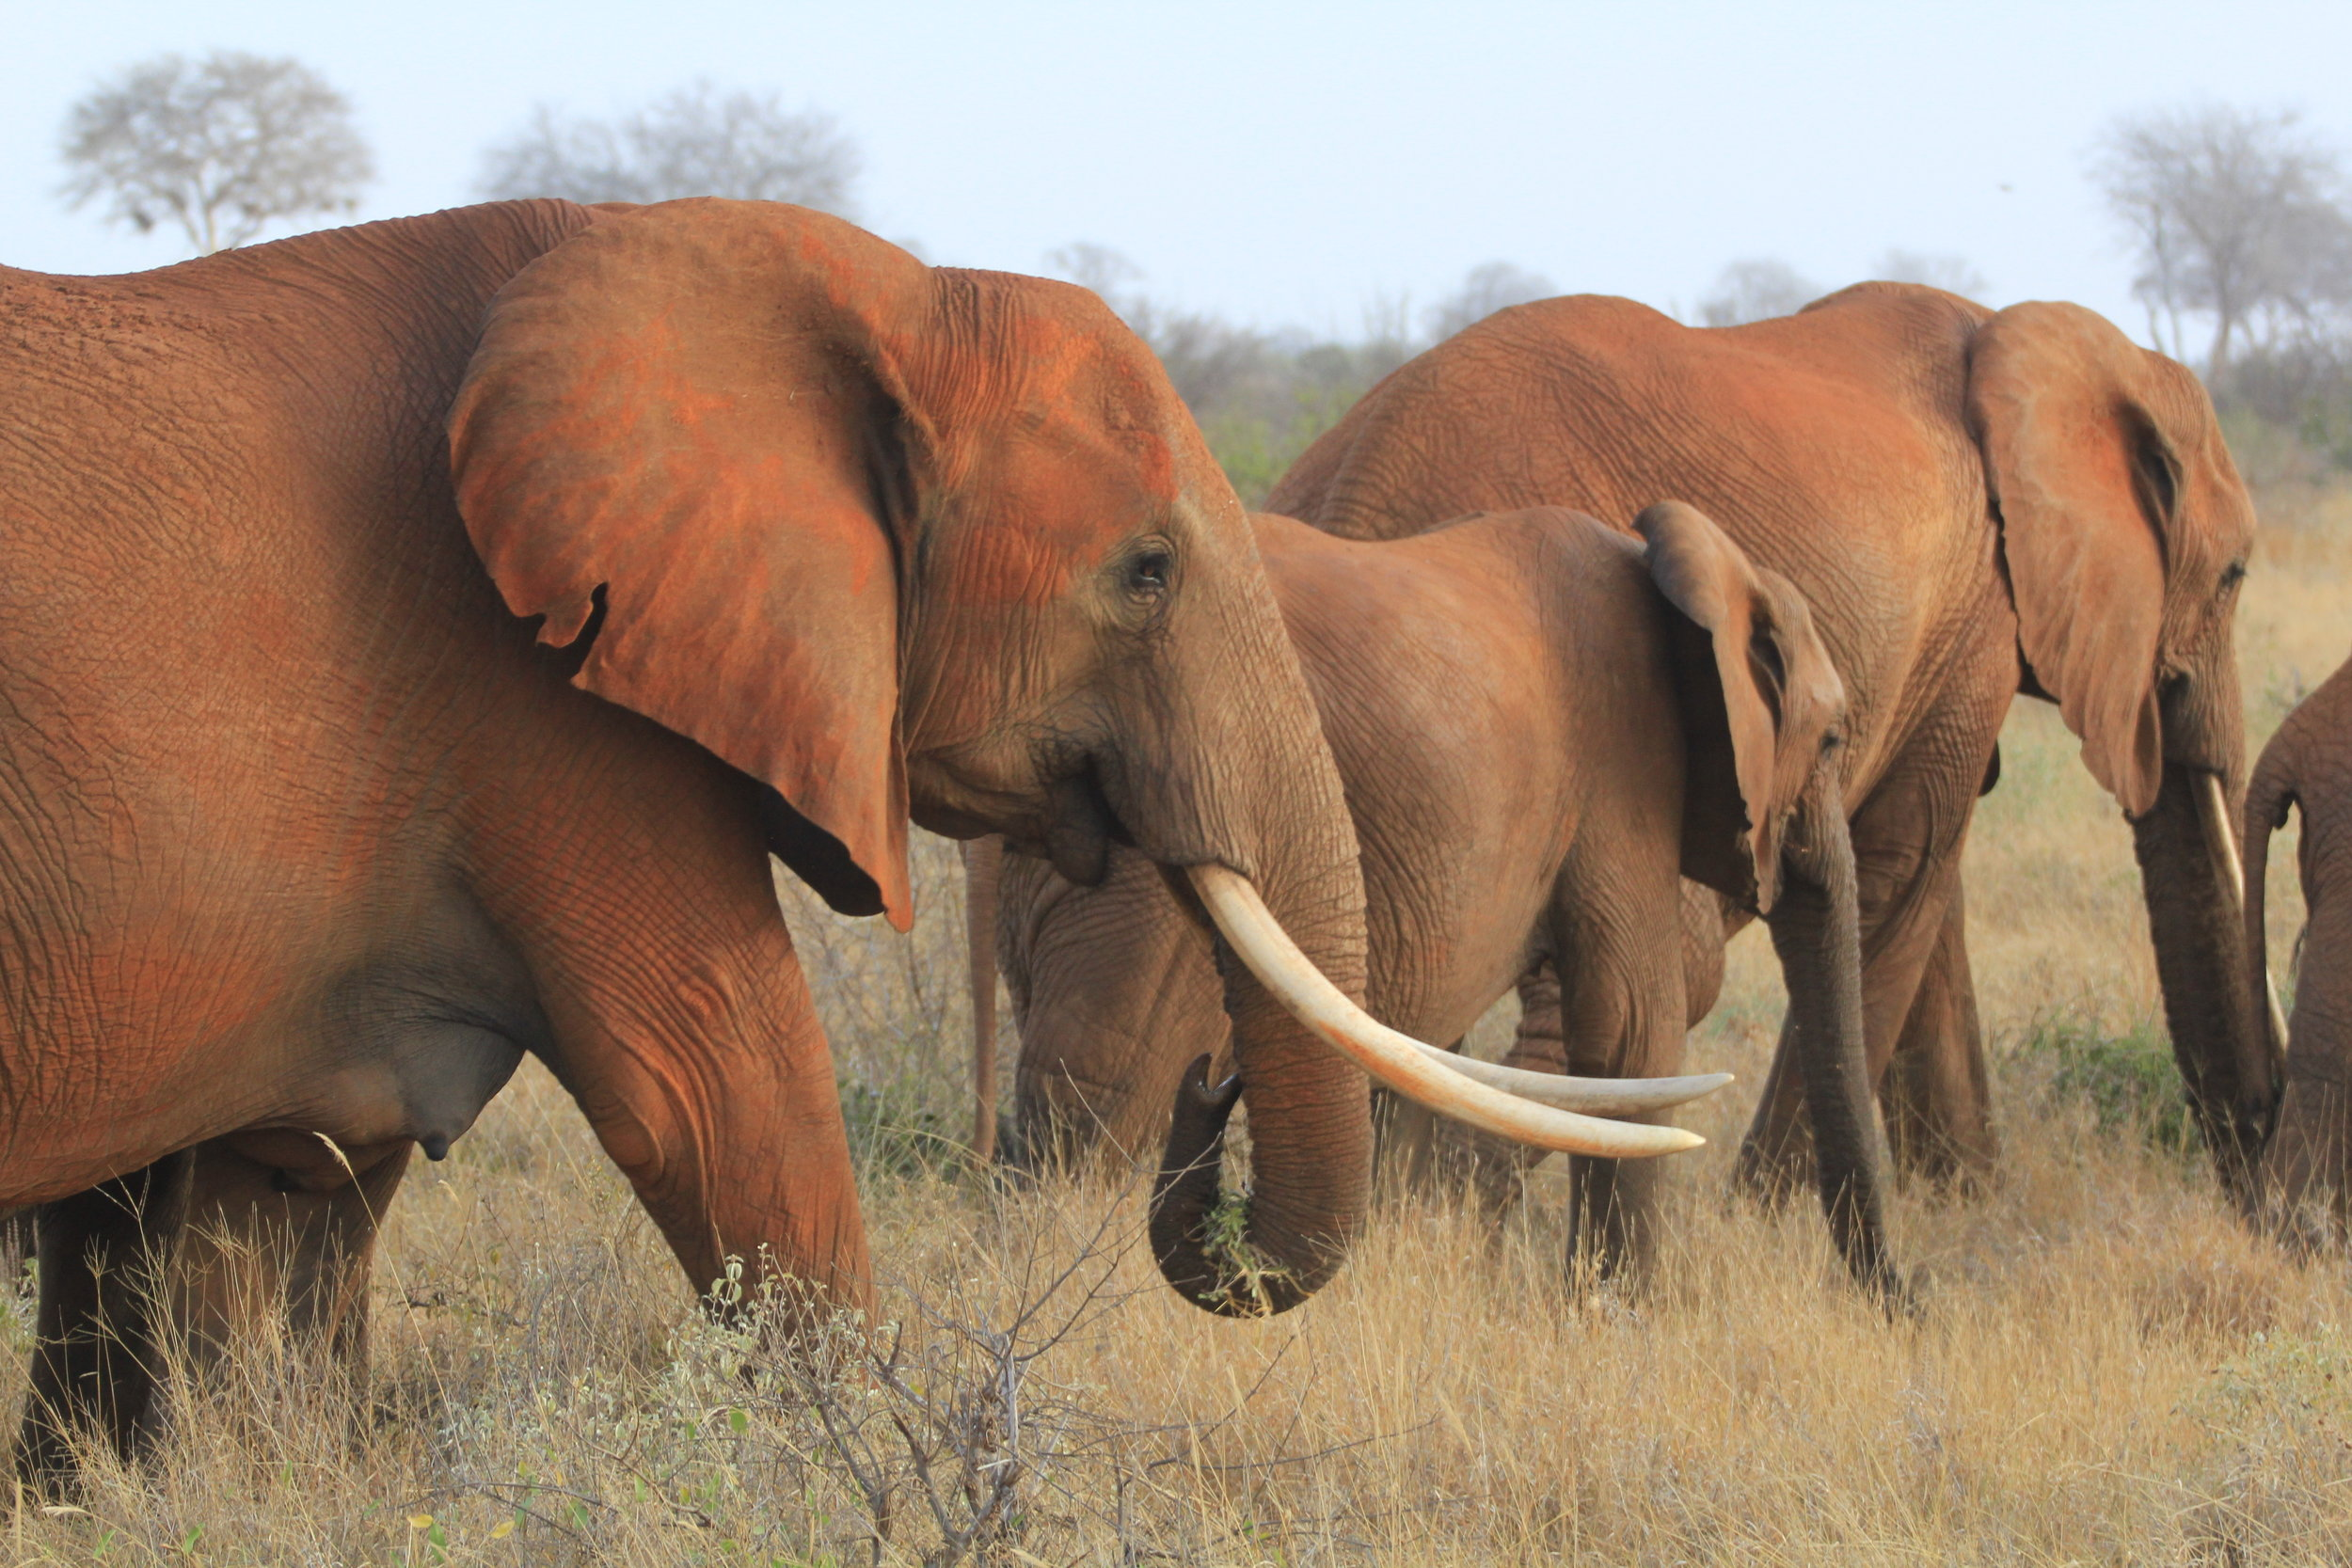 elephants in stave east national park